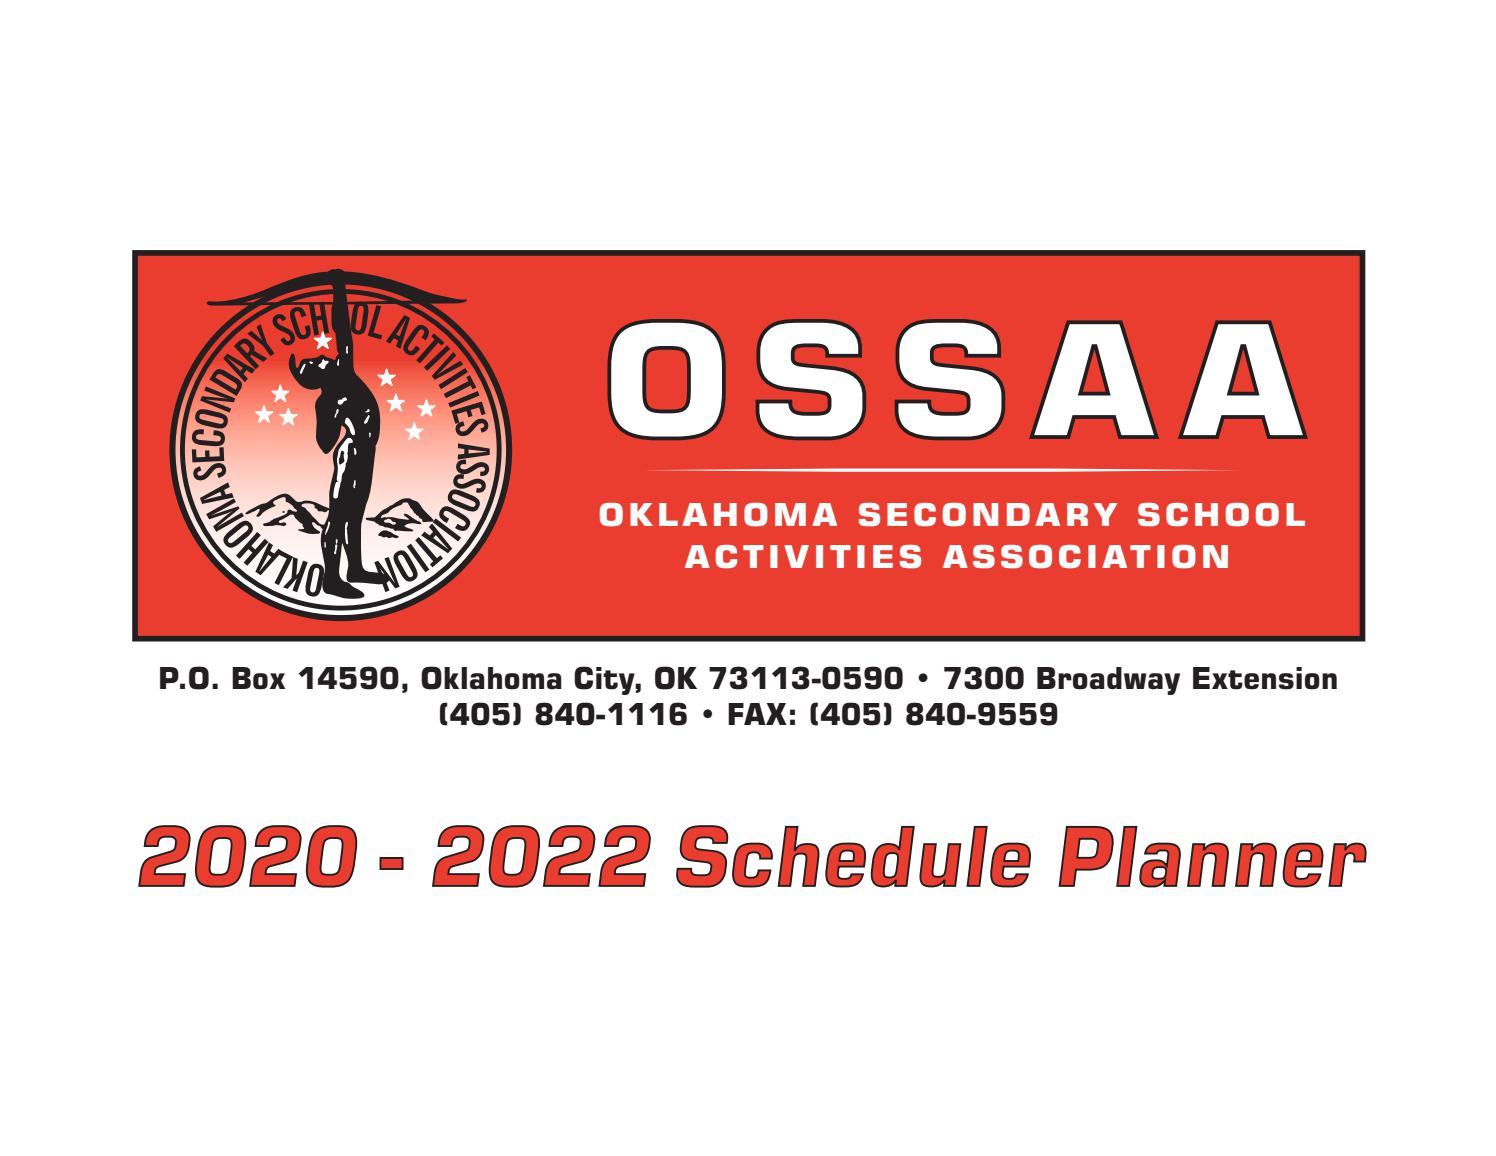 Boone County Schools Calendar 2022 2023.Ossaa 2 Year Schedule Planner 2020 2022 By Ossaa Media Issuu